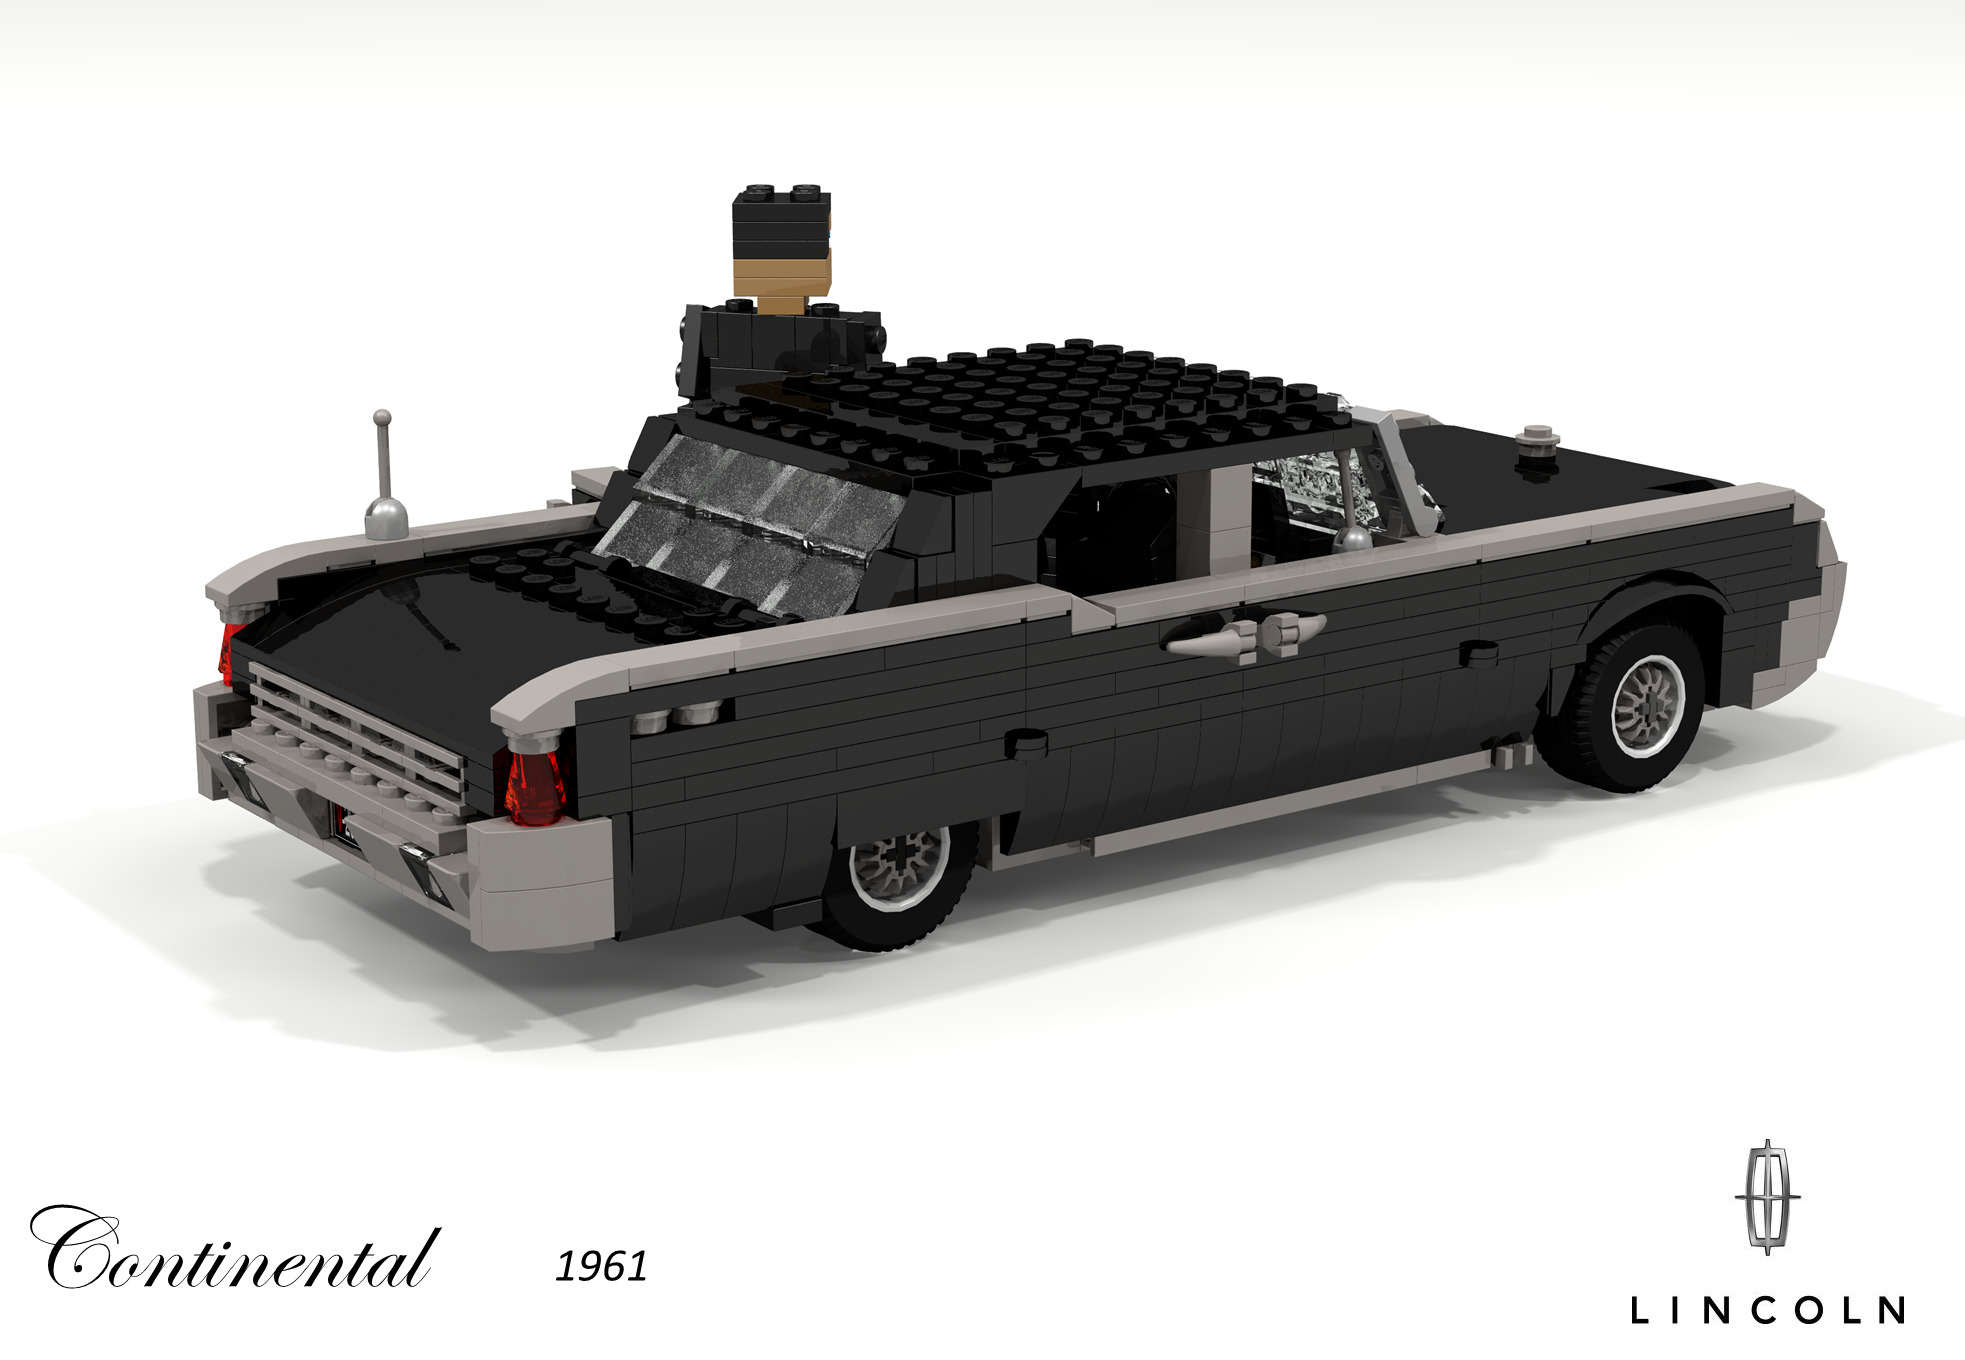 lincoln_1961_continental_13.png